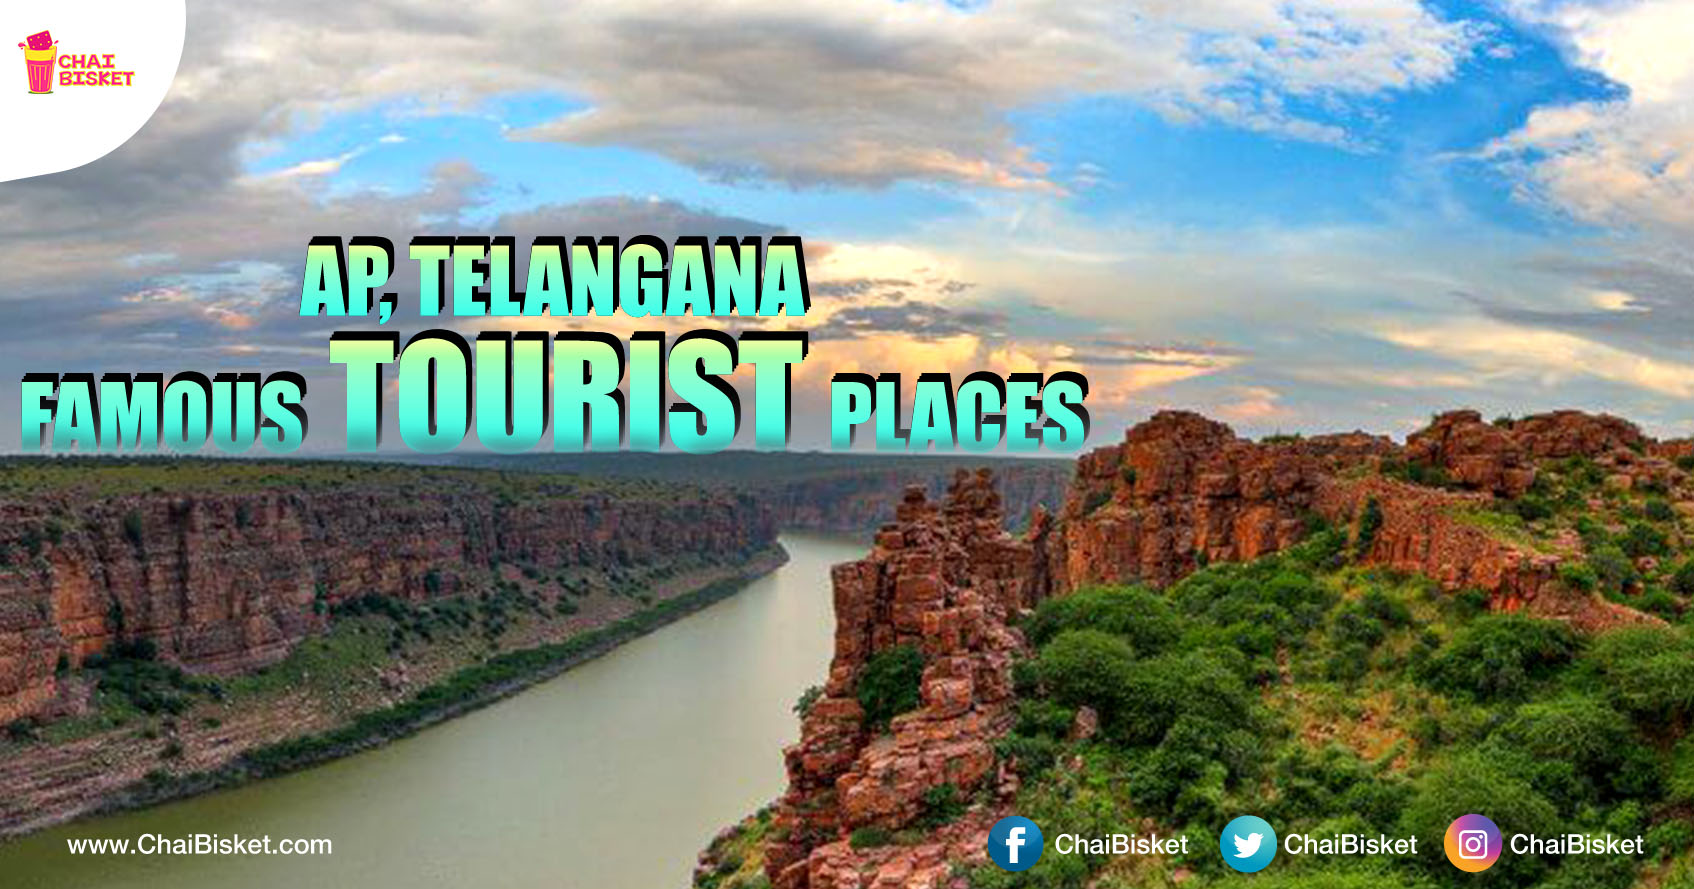 15 Famous Tourist Attractions Of Telangana Andhra Pradesh That You Must Definitely Visit